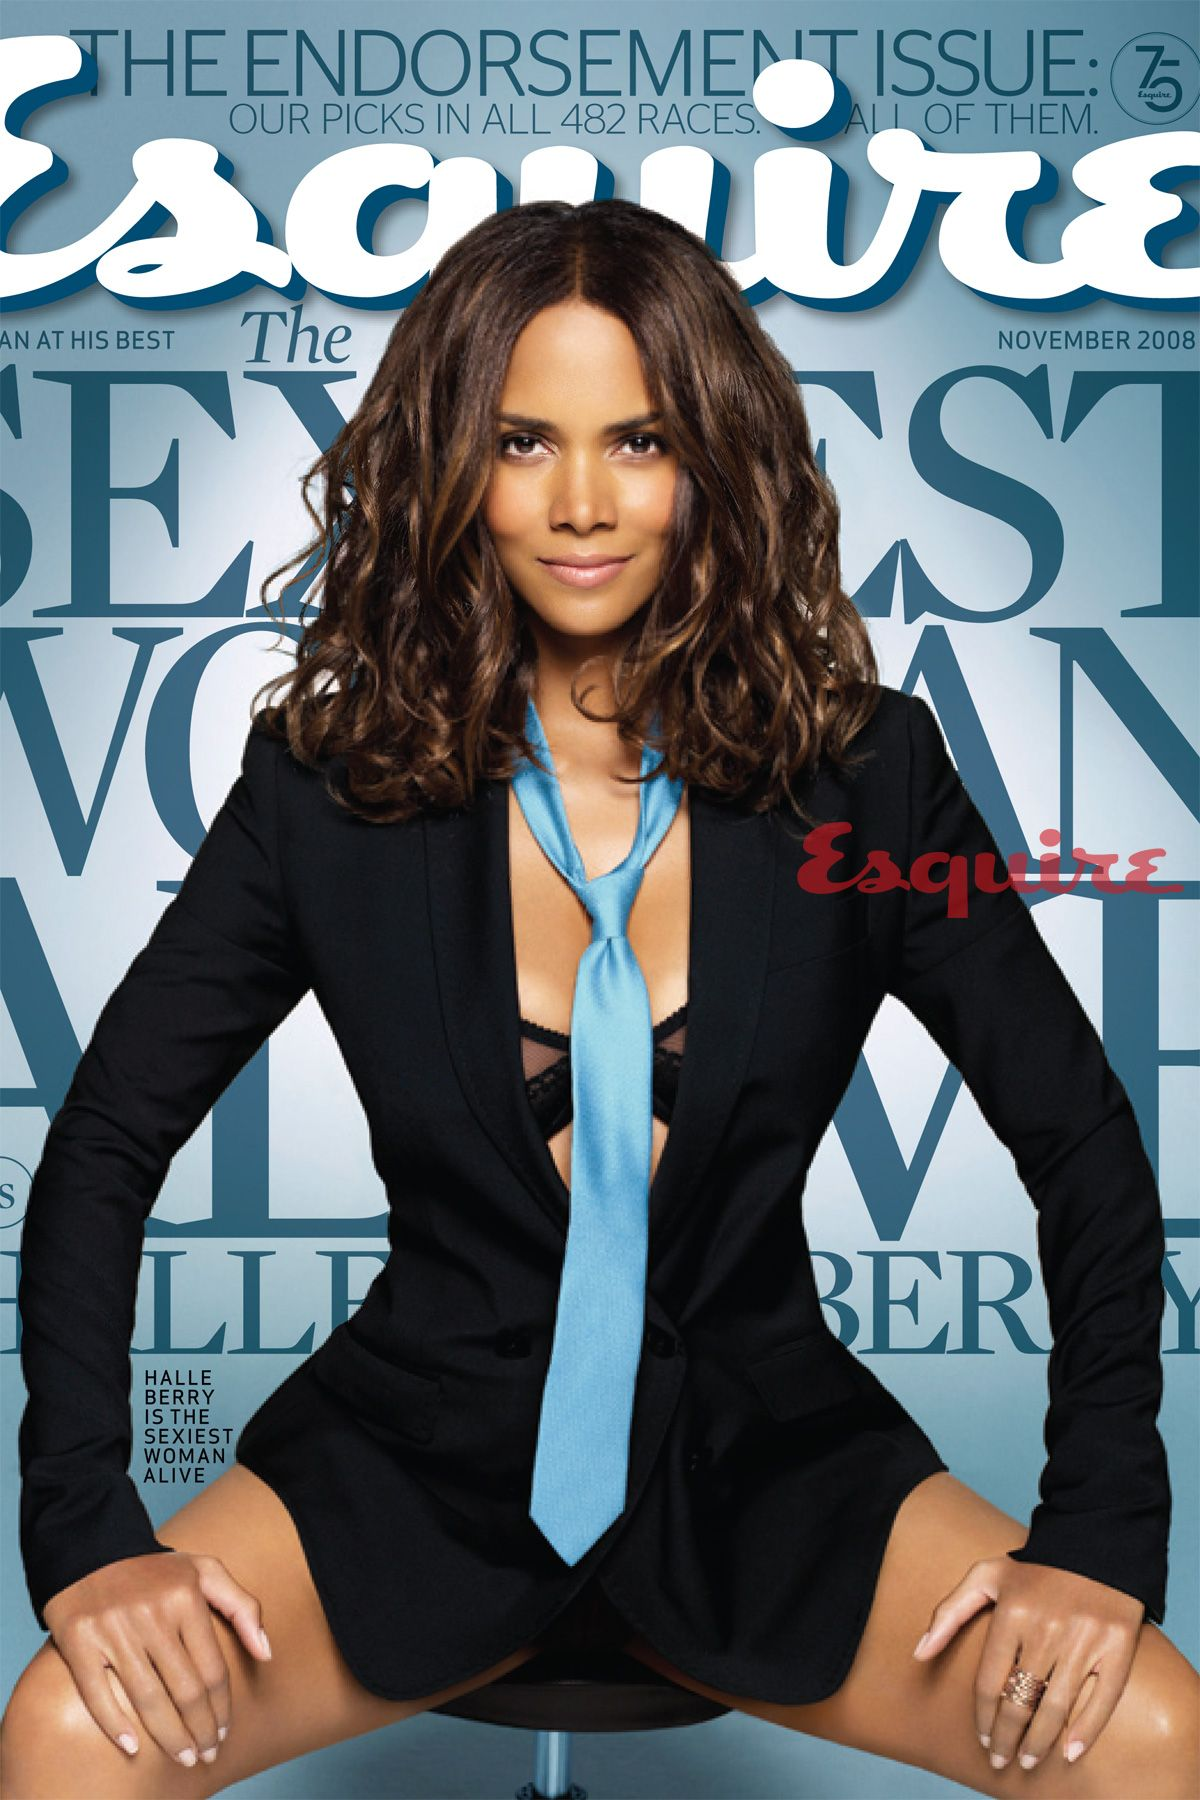 Berühmt Halle Berry: The Sexiest Woman Alive 2008 &ZI_95